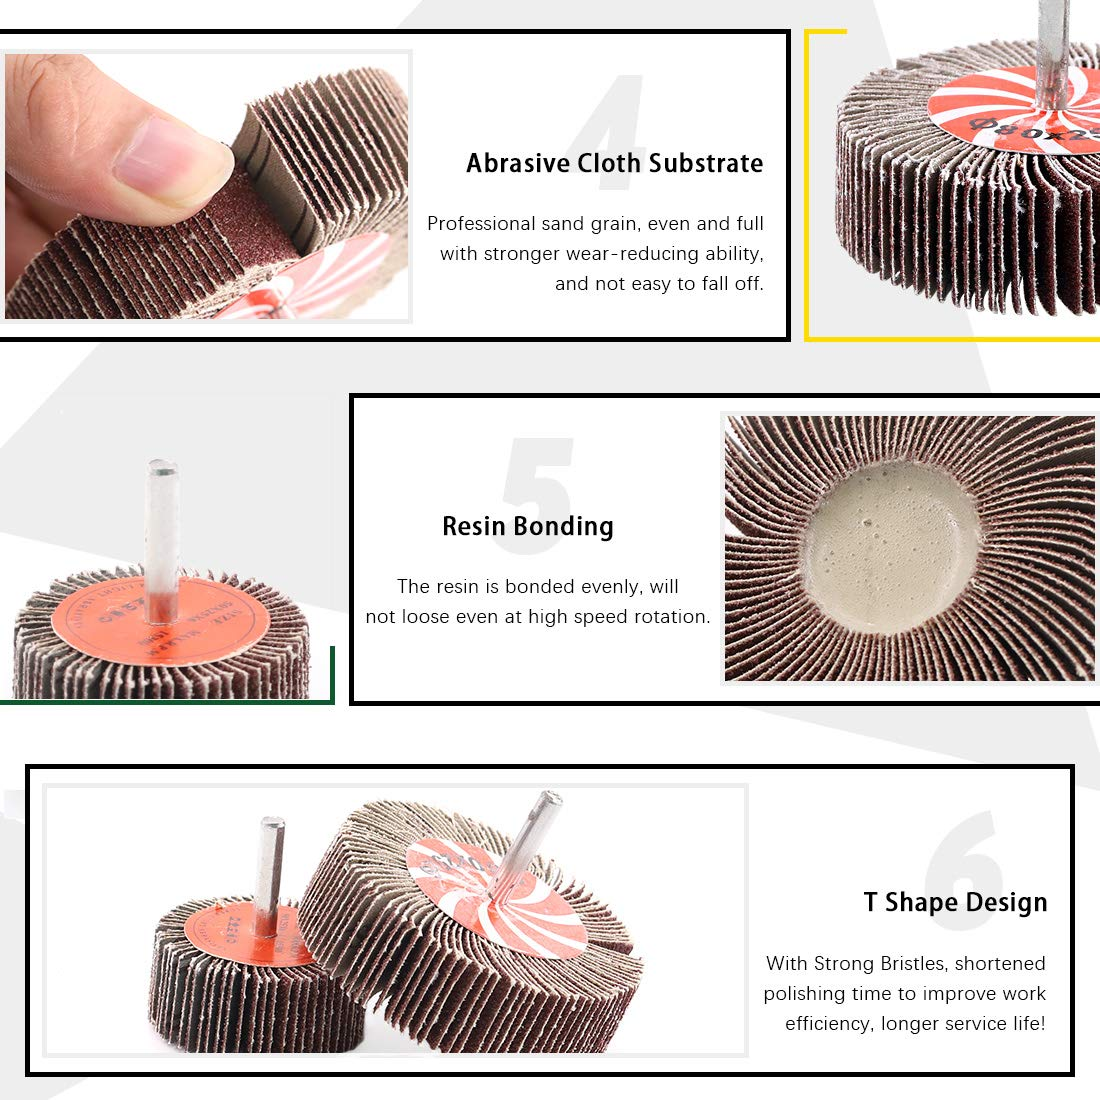 Including 2 Sanding Flap Wheels 80 Grit and 6 Wire Wheel Brushes with 1//4 Inch Shank for Rust Removal Keadic 8 Pcs Wire Wheel Brush Set Corrosion and Scrub Surfaces